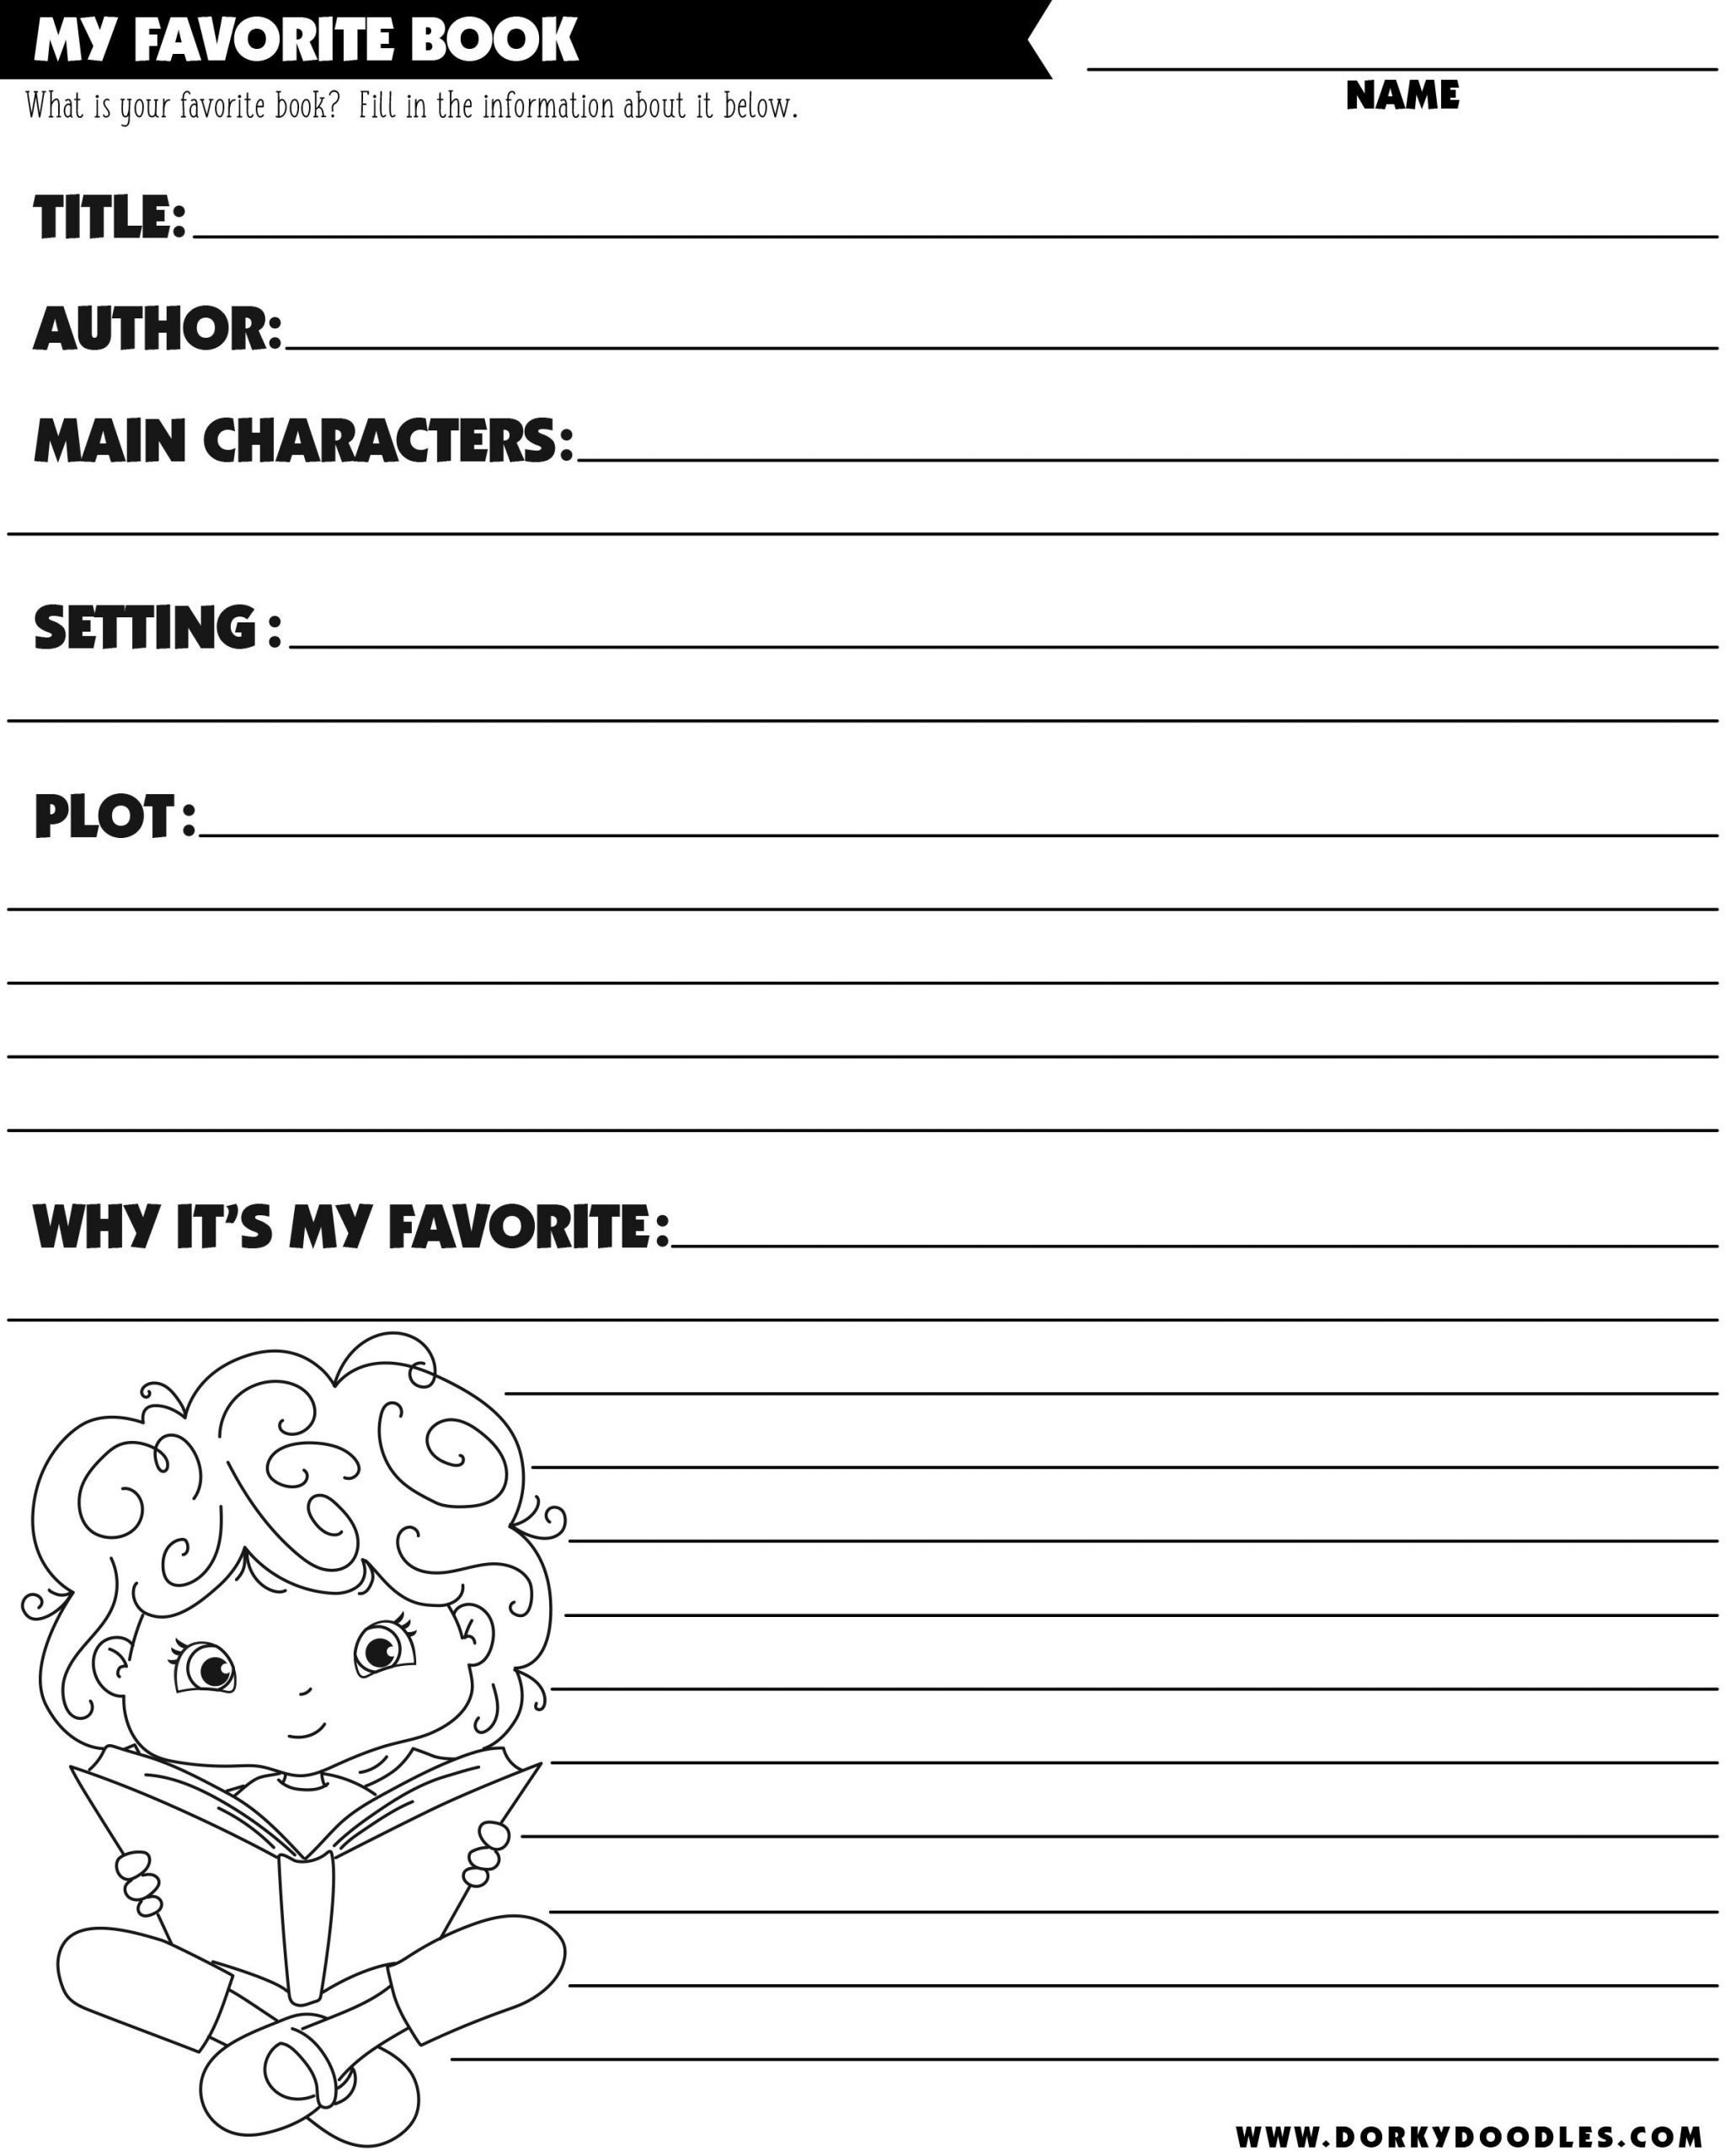 character setting plot worksheet boy and girl book report worksheet printable dorky doodles of character setting plot worksheet scaled